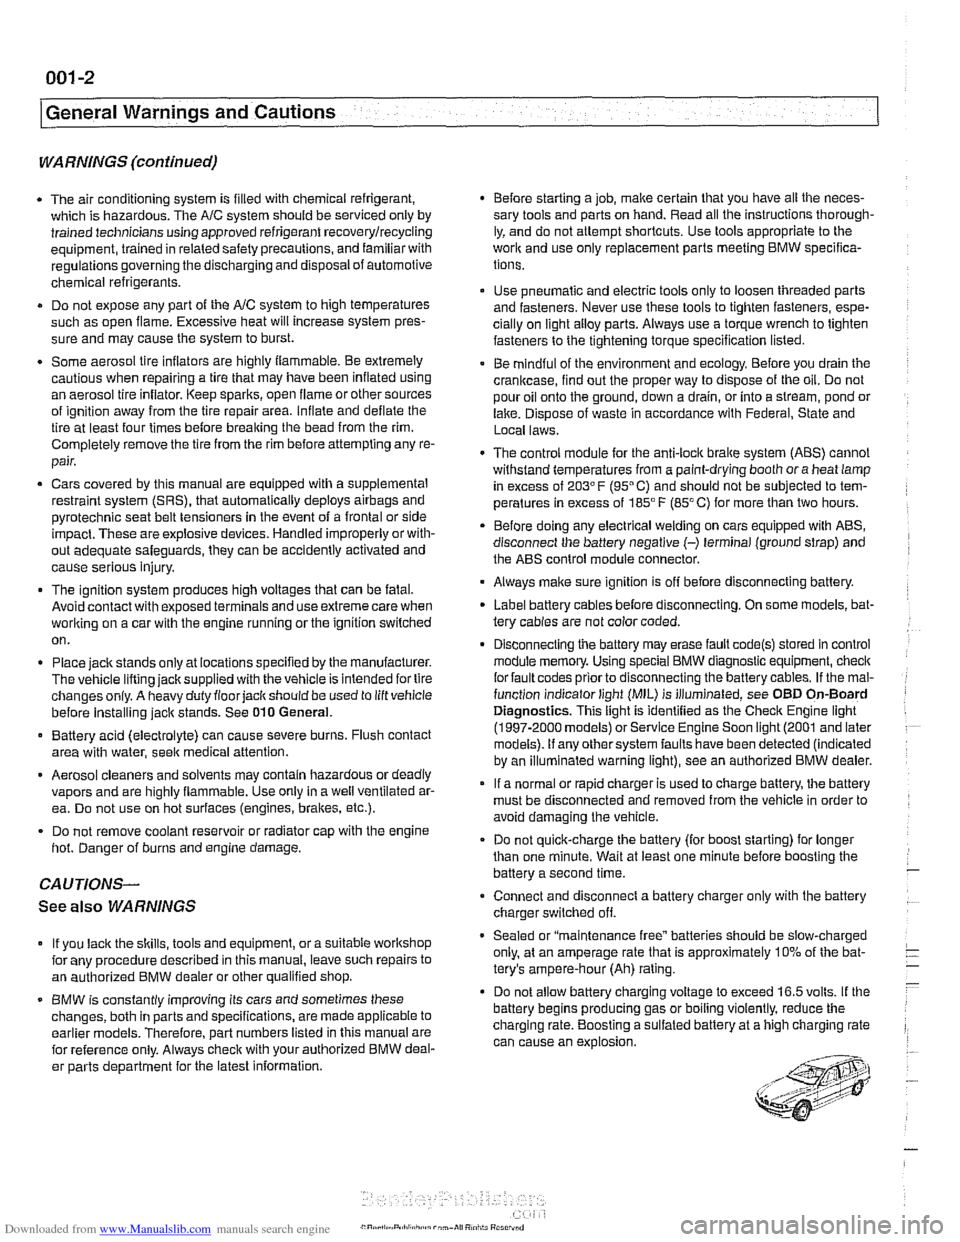 BMW 525i 1997 E39 Workshop Manual Downloaded from www.Manualslib.com manuals search engine  I General Warnings  and Cautions  WARNINGS (continued)  . The air conditioning system is filled with chemical refrigerant,  which  is hazardou